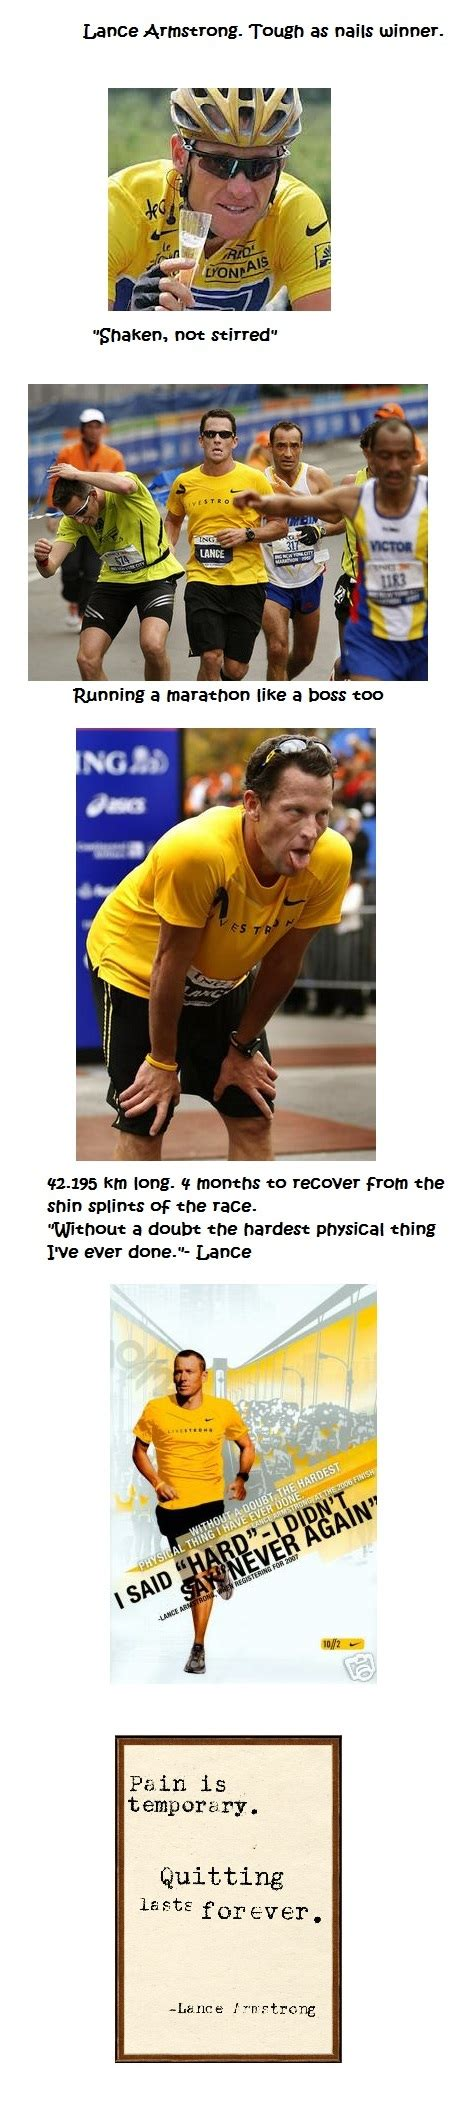 Nyc Marathon Was The Hardest Physical Thing Lance Armstrong Did by Motivational What S The Hardest Physical Thing Lance